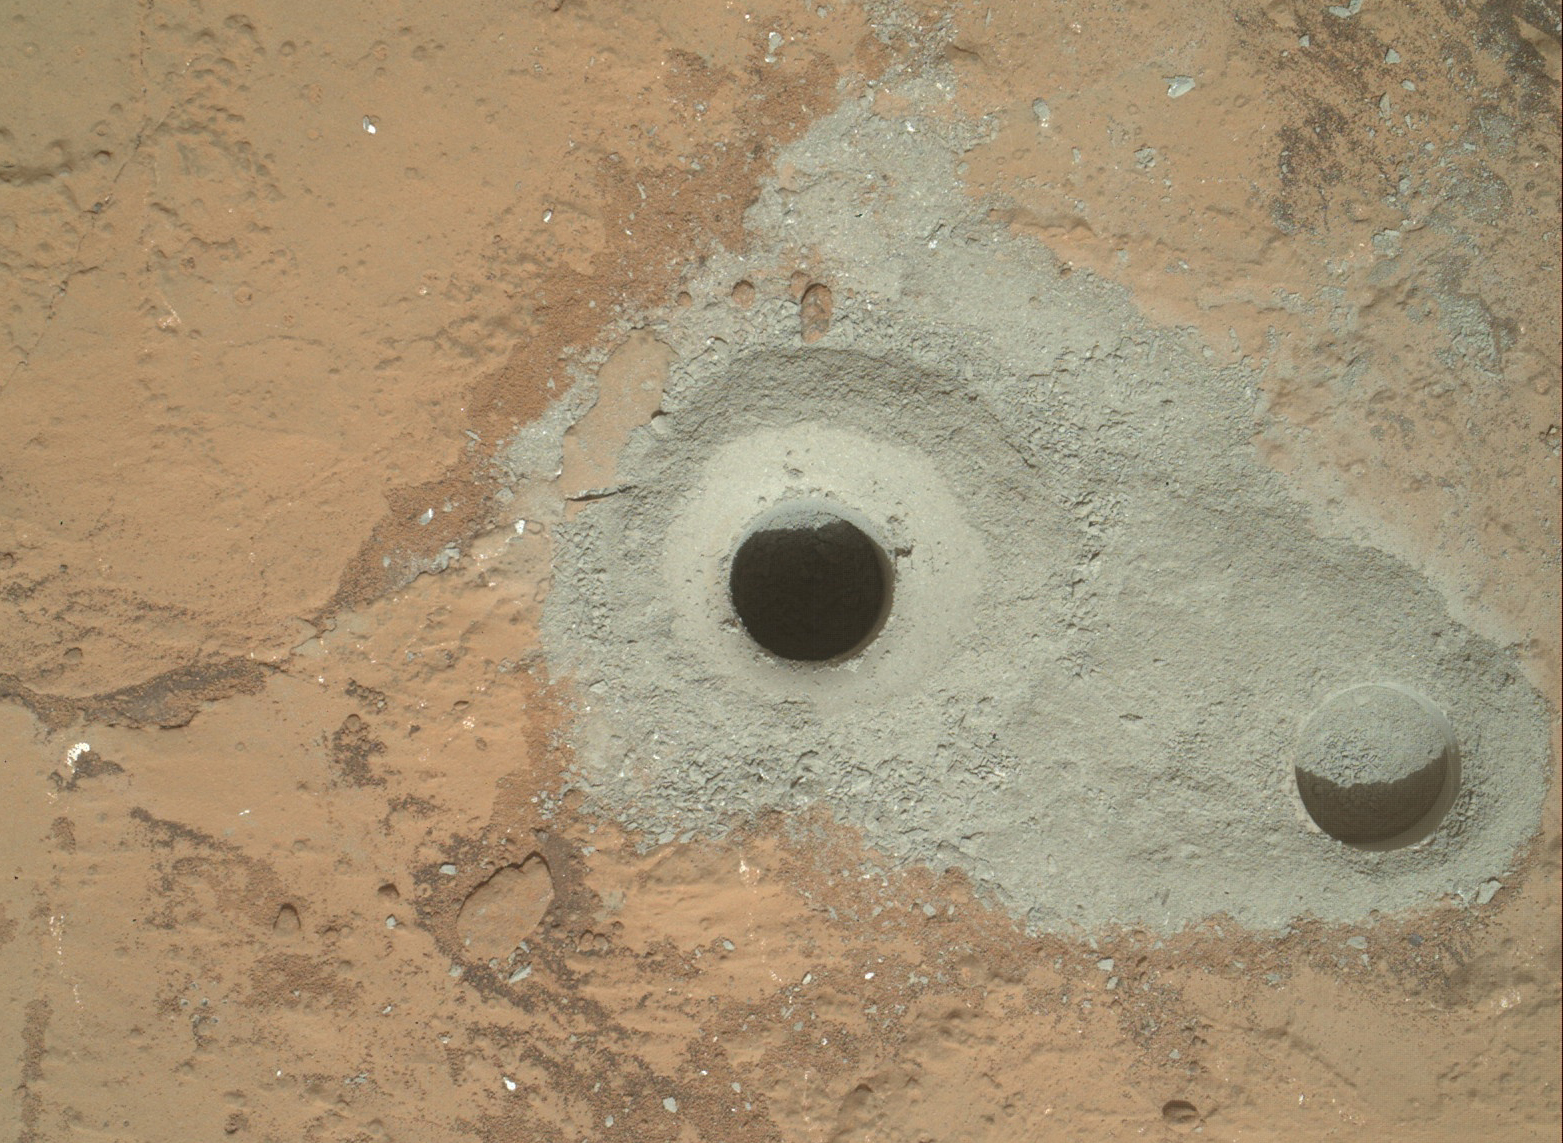 Curiosity Rover Drills Into Mars Rock, Collects Sample - A Space First